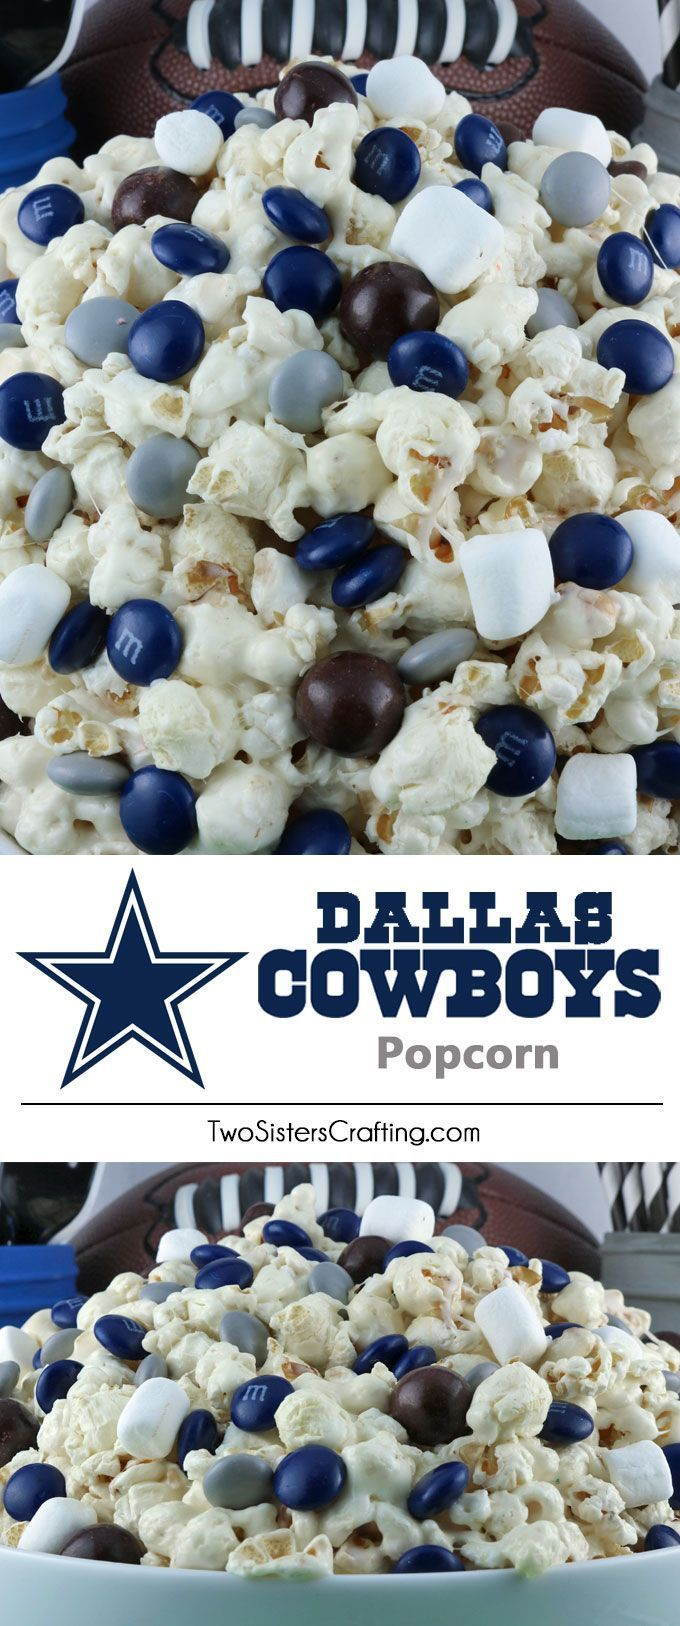 Dallas Cowboys Popcorn for those Dallas Cowboys fans in your life. Sweet, salty, crunchy and delicious and it is extremely easy to make. This delicious popcorn will be perfect at your next game day football party. a NFL playoff party or a Super Bowl party. Follow us for more fun Super Bowl Food Ideas.